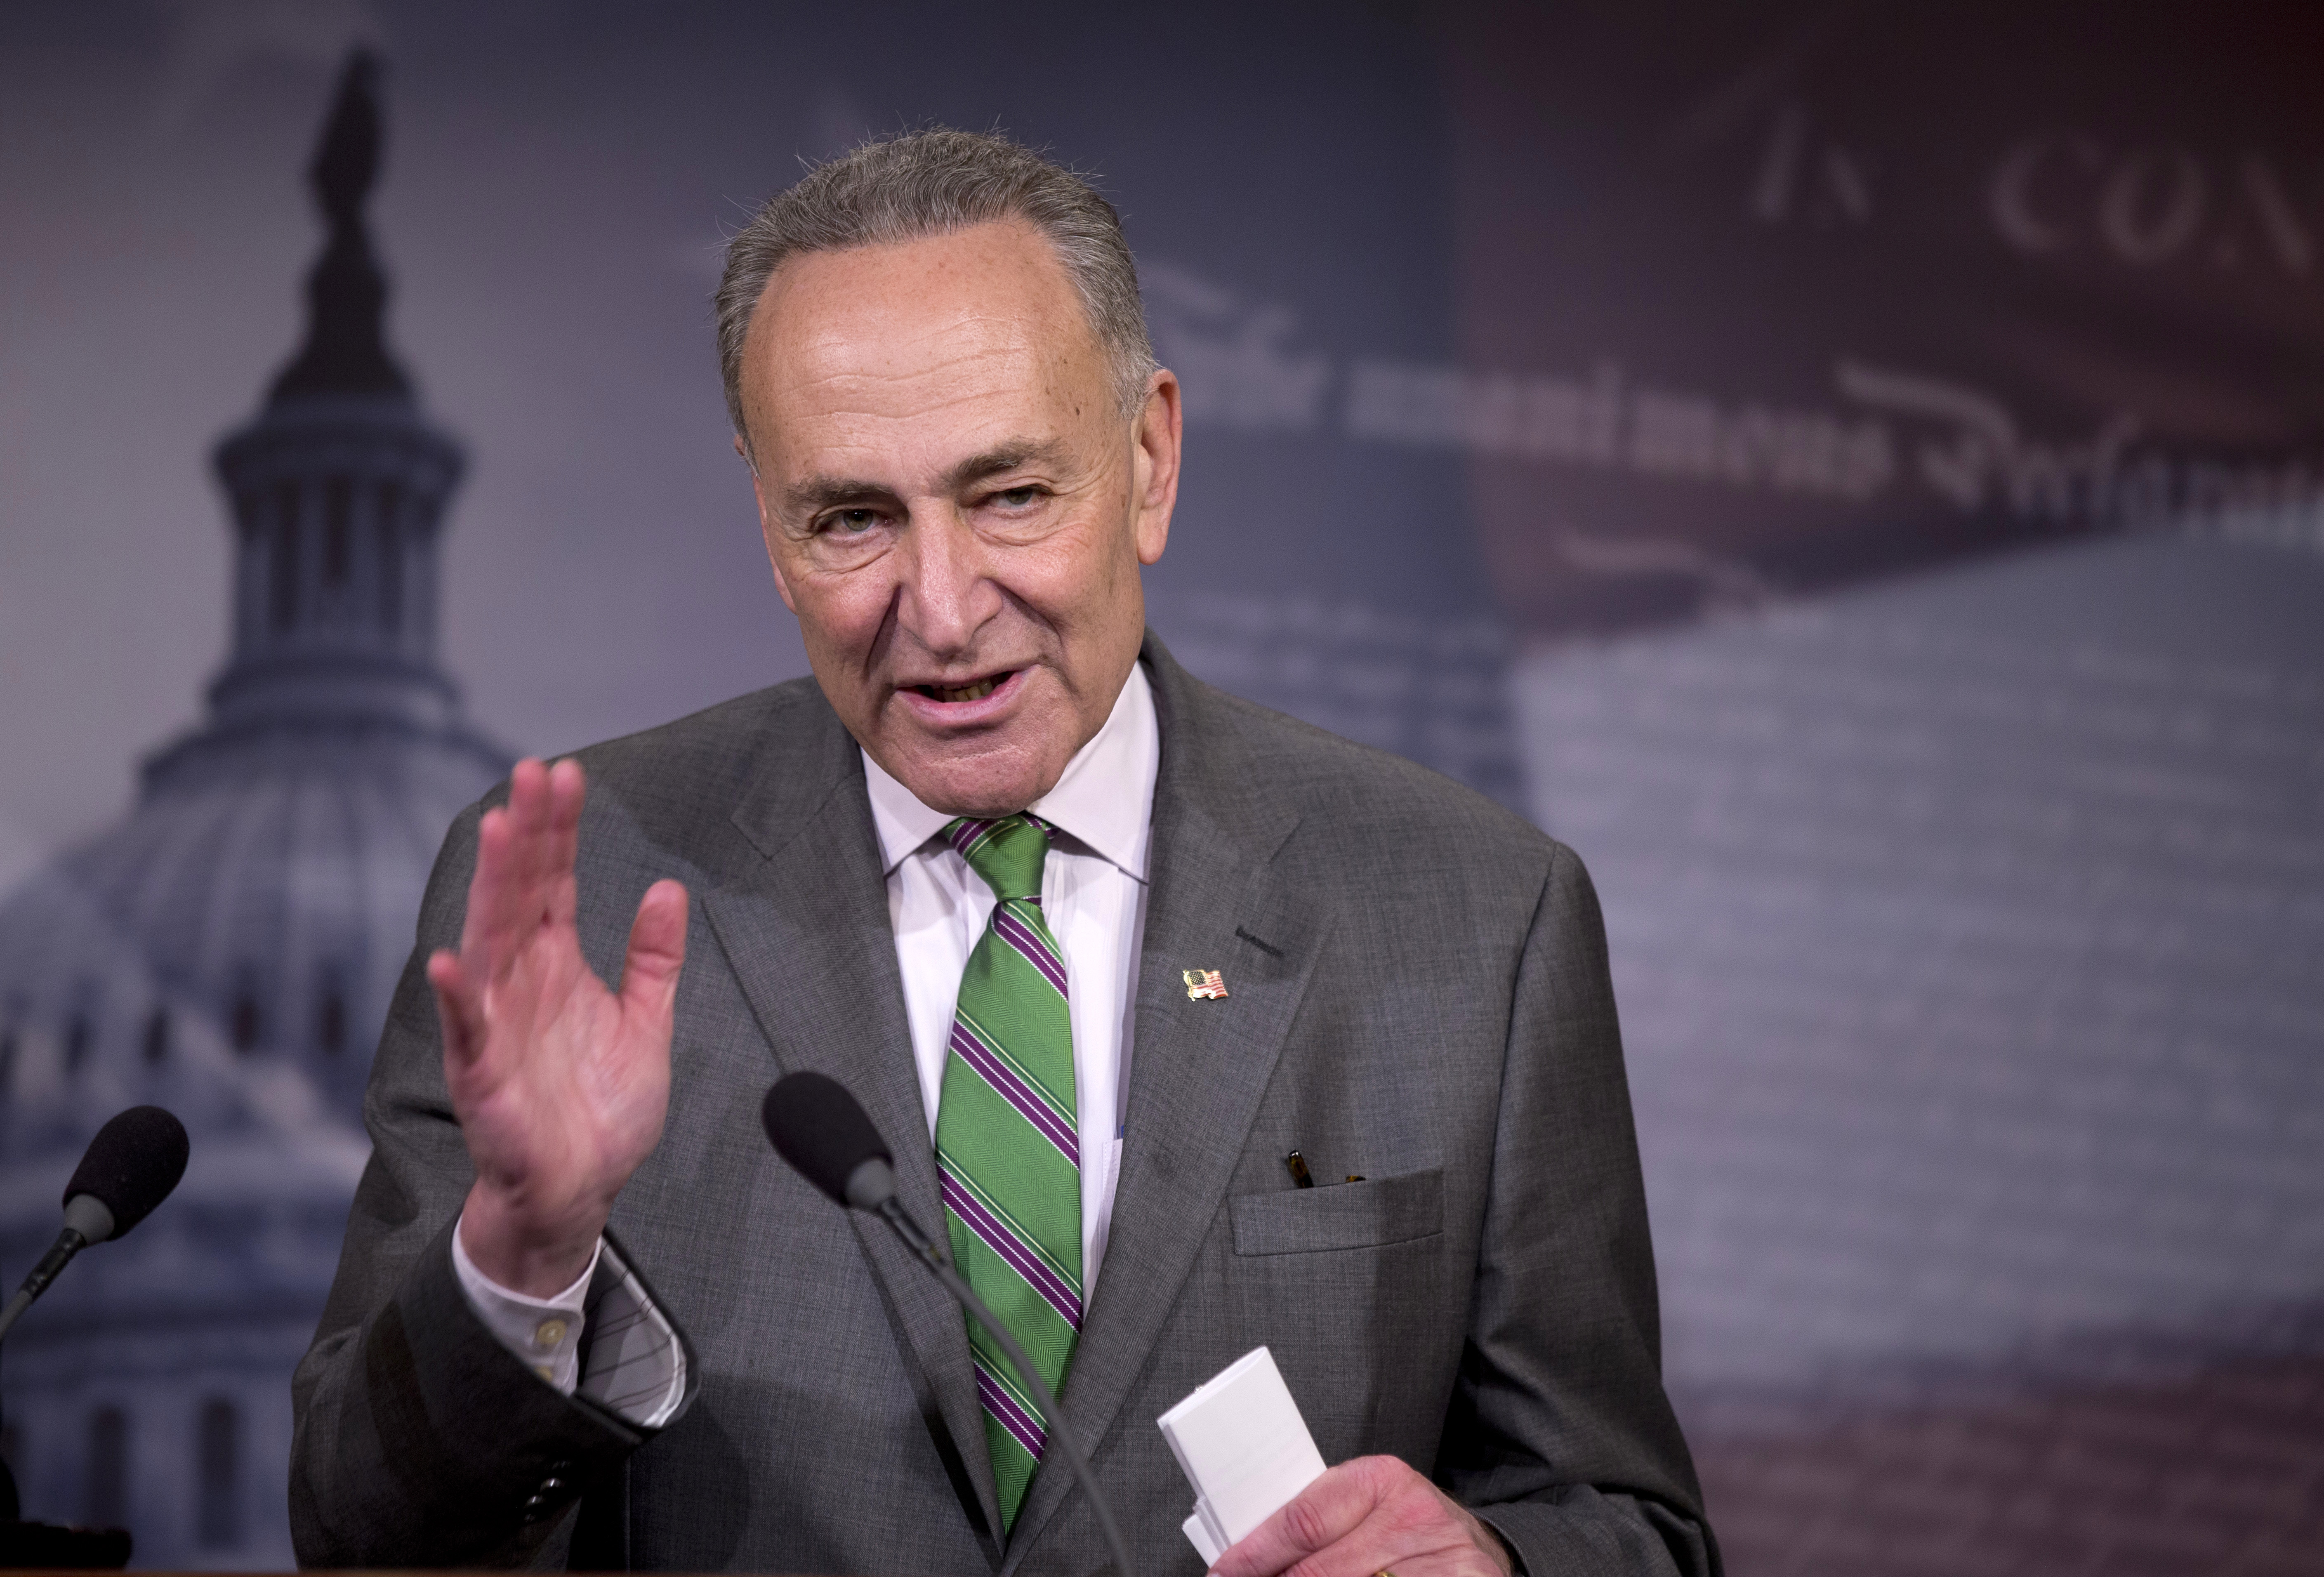 Senator Charles Schumer speaks to reporters on Capitol Hill about the Supreme Court decision on campaign financing, April 2, 2014.